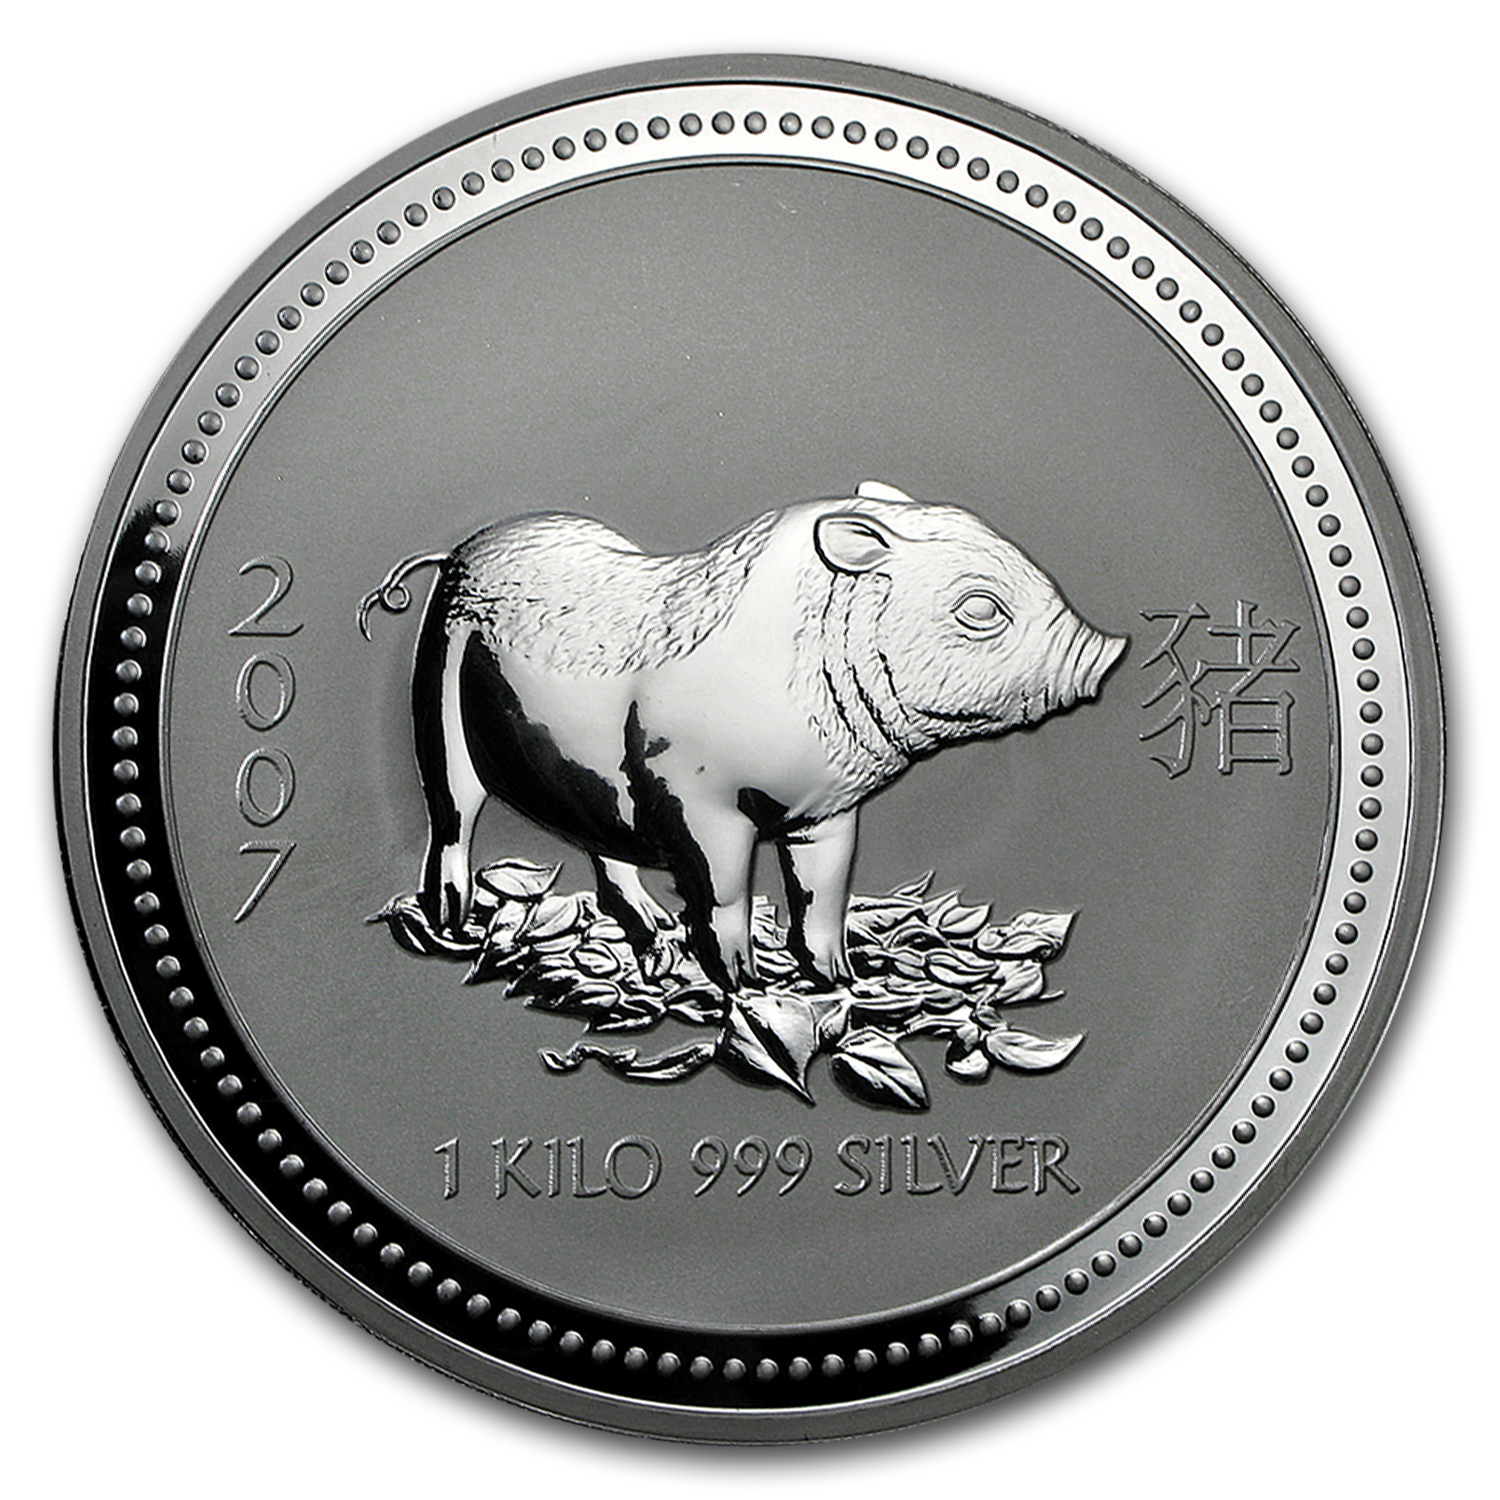 2007 1 kilo Silver Lunar Year of the Pig (Series I)